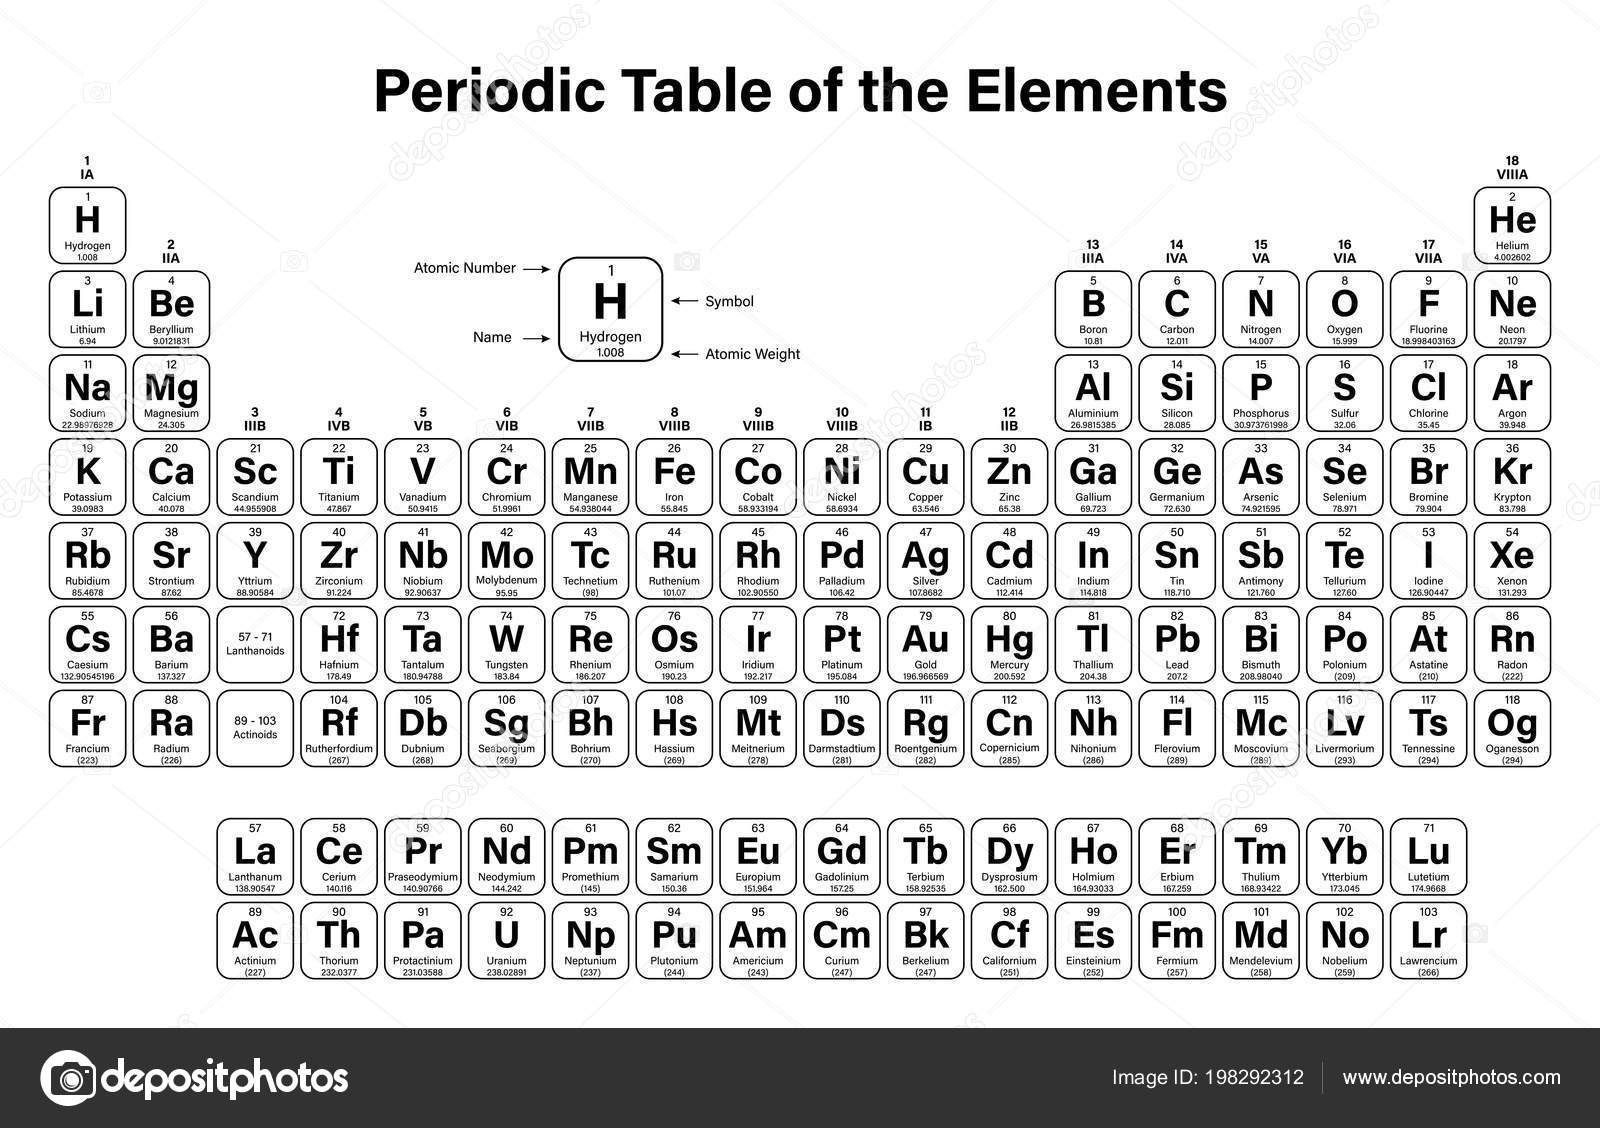 periodic table of the elements vector illustration shows atomic number symbol name and atomic weight including 2016 the four new elements nihonium